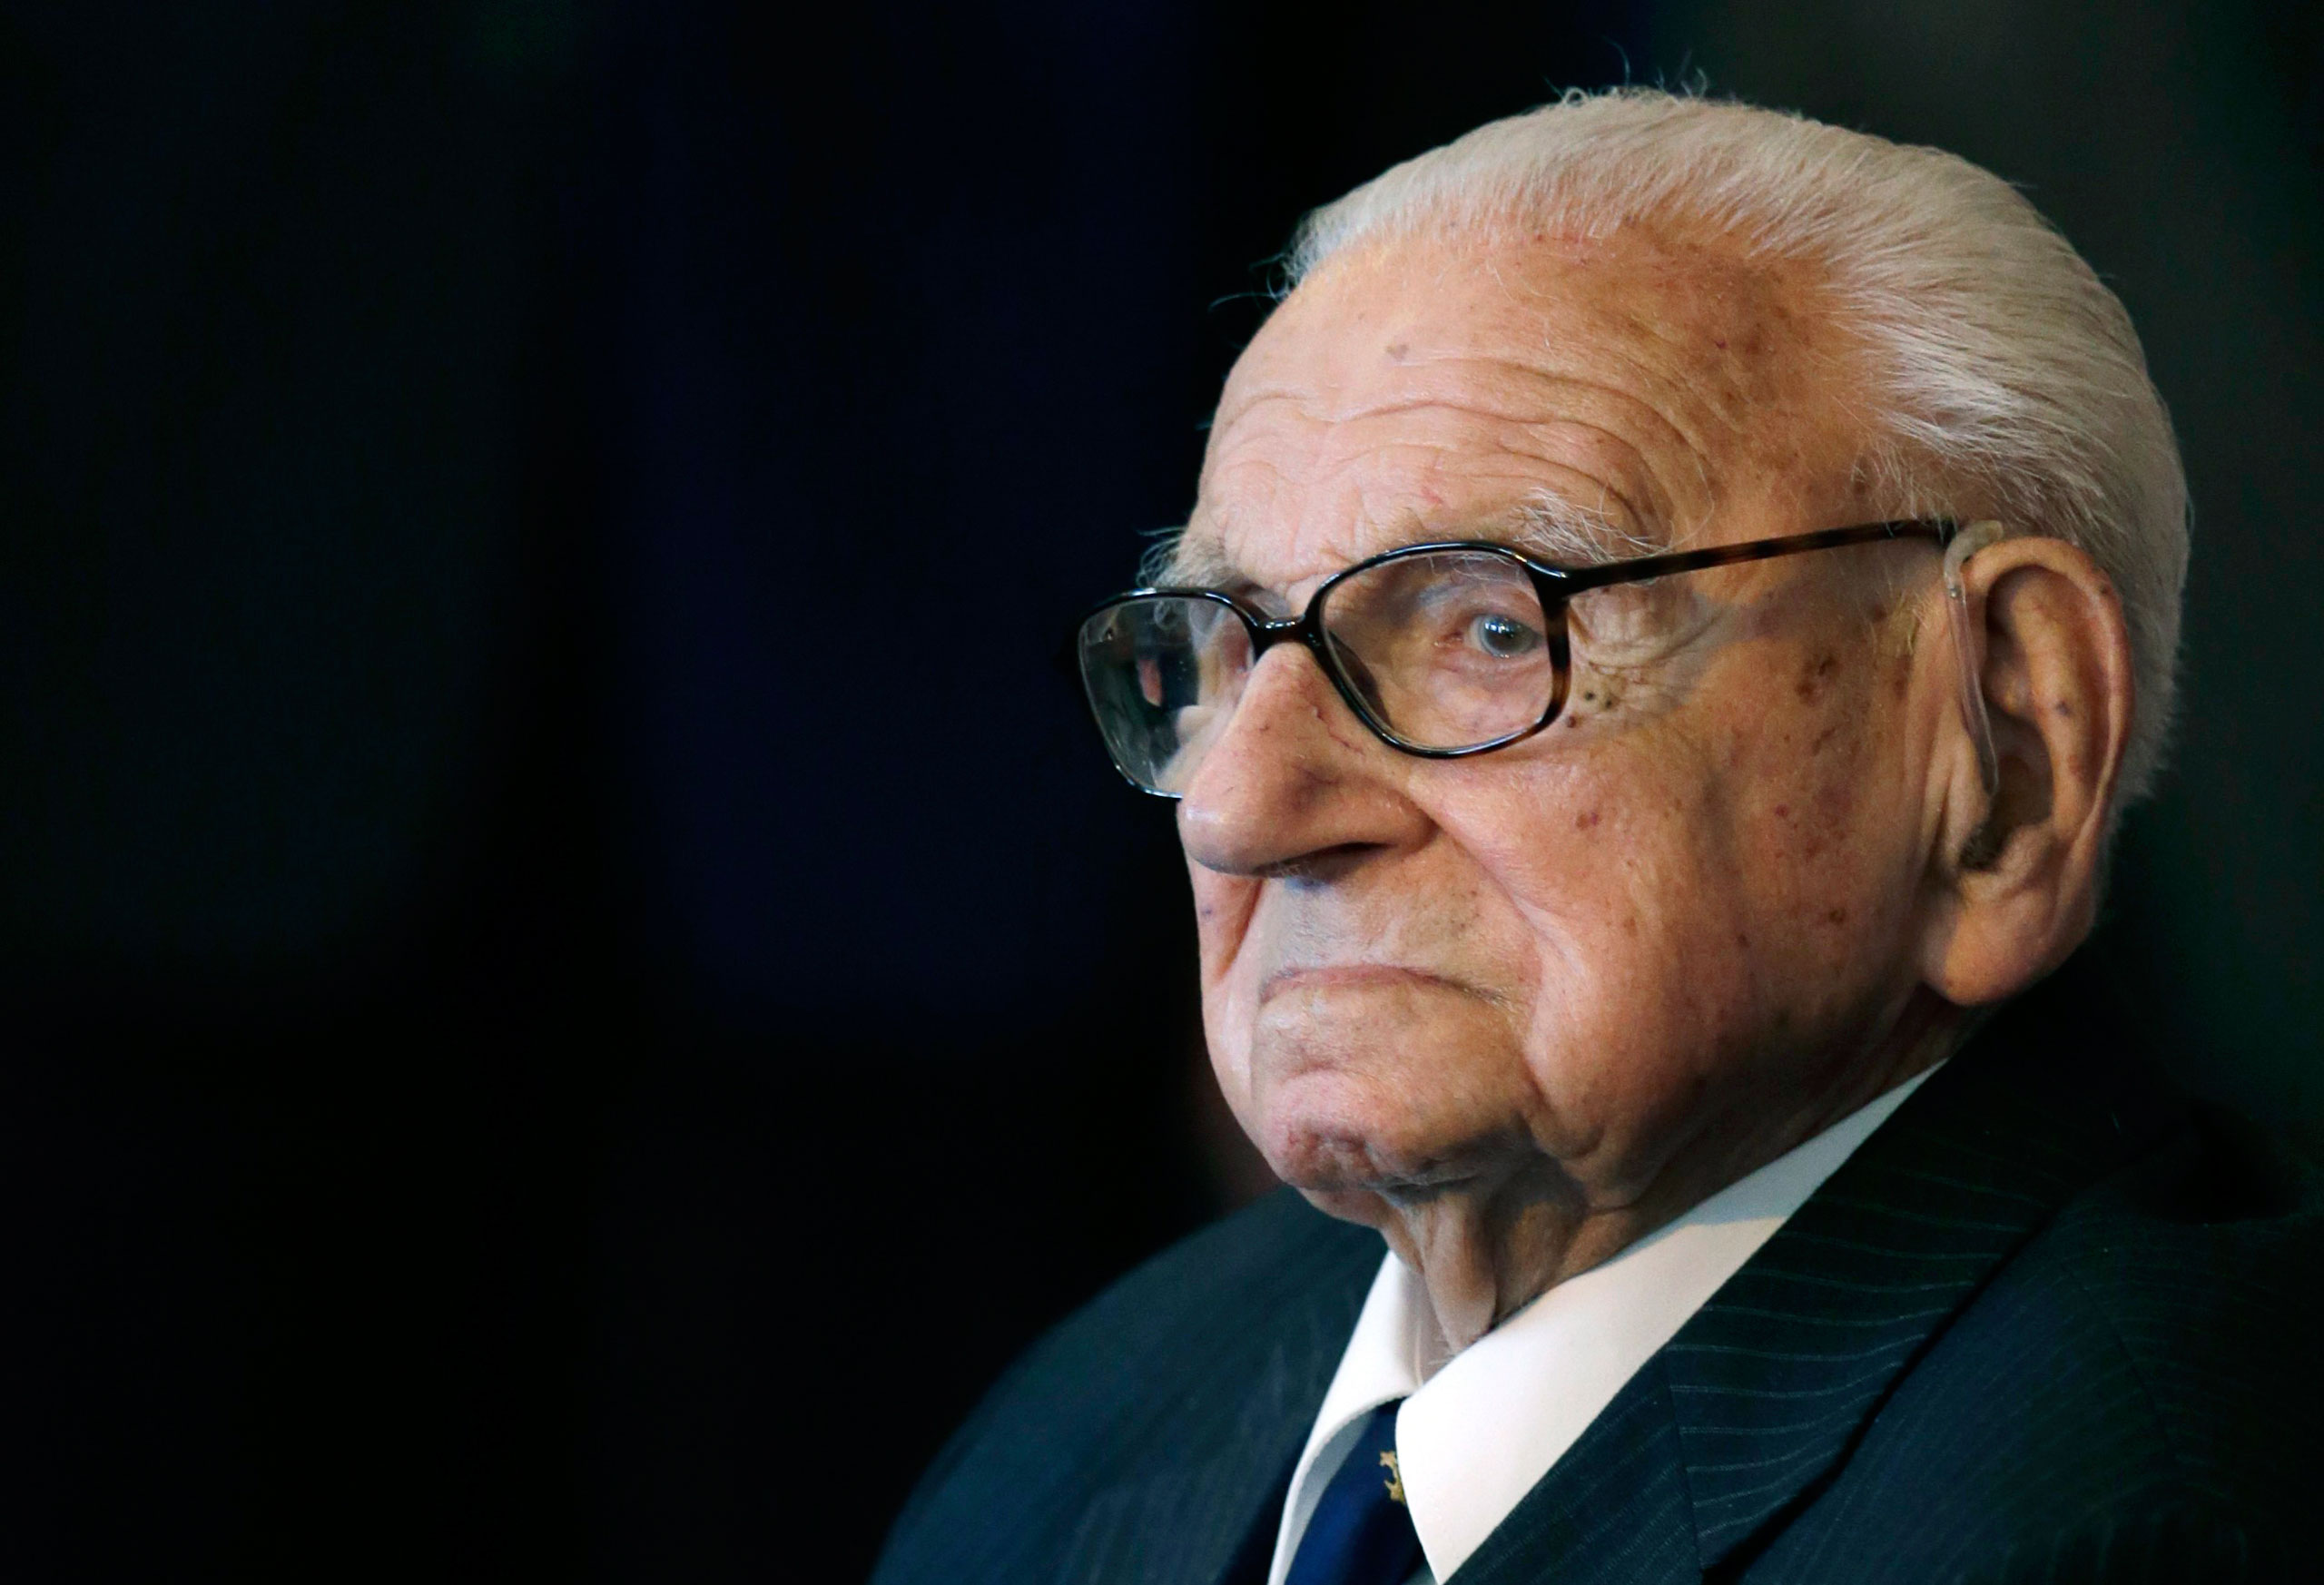 The then 105 year-old Sir Nicholas Winton waiting to be decorated with the highest Czech Republic's decoration, The Order of the White Lion at the Prague Castle in Prague, on Oct. 28, 2014.